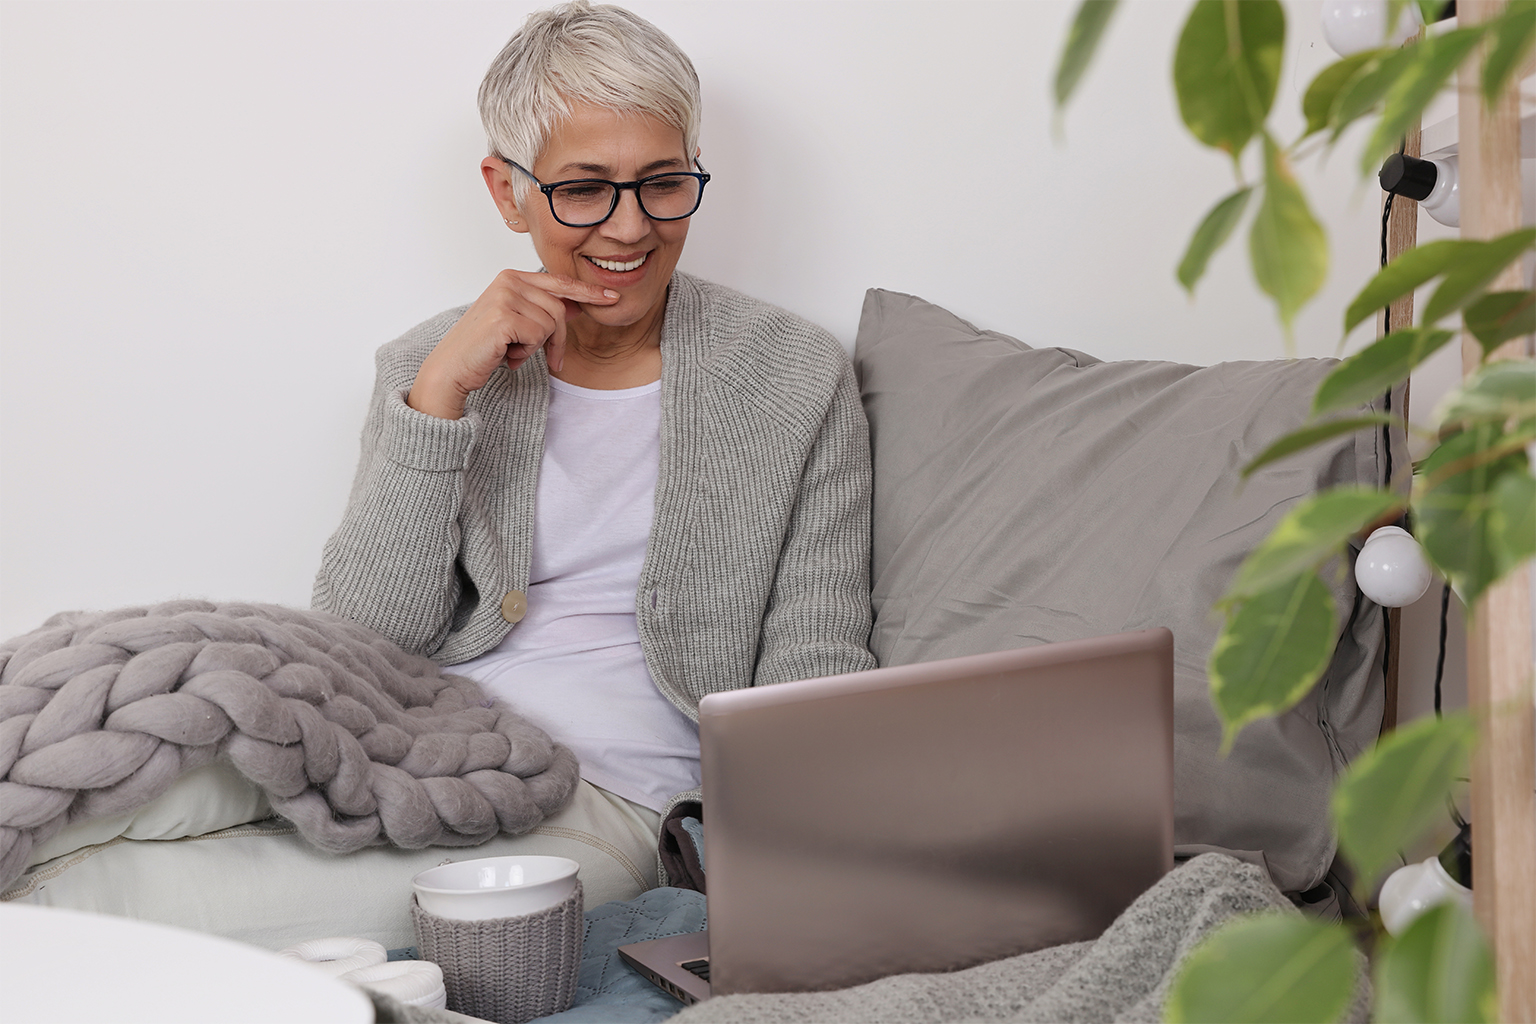 Older woman lounging comfortably with blanket and mug, working at laptop